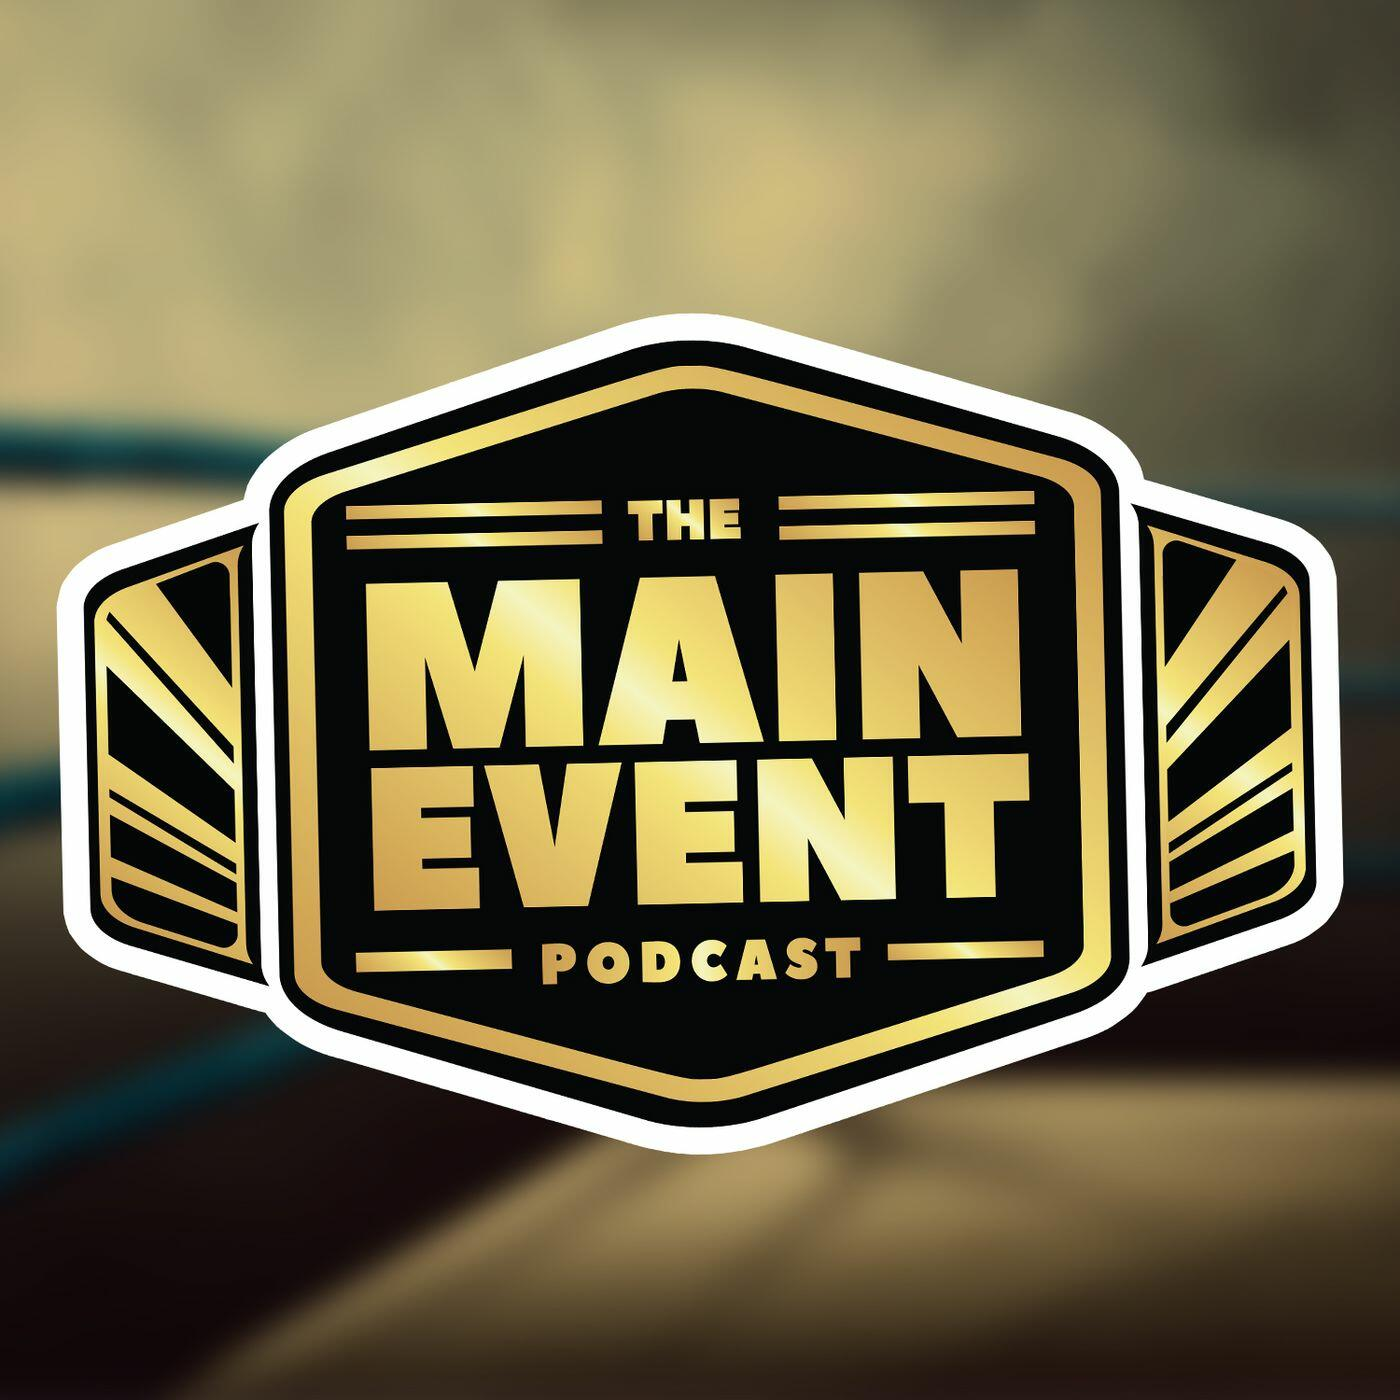 Listen to the The Main Event Podcast Episode - Was the WWE Draft a letdown? on iHeartRadio | iHeartRadio